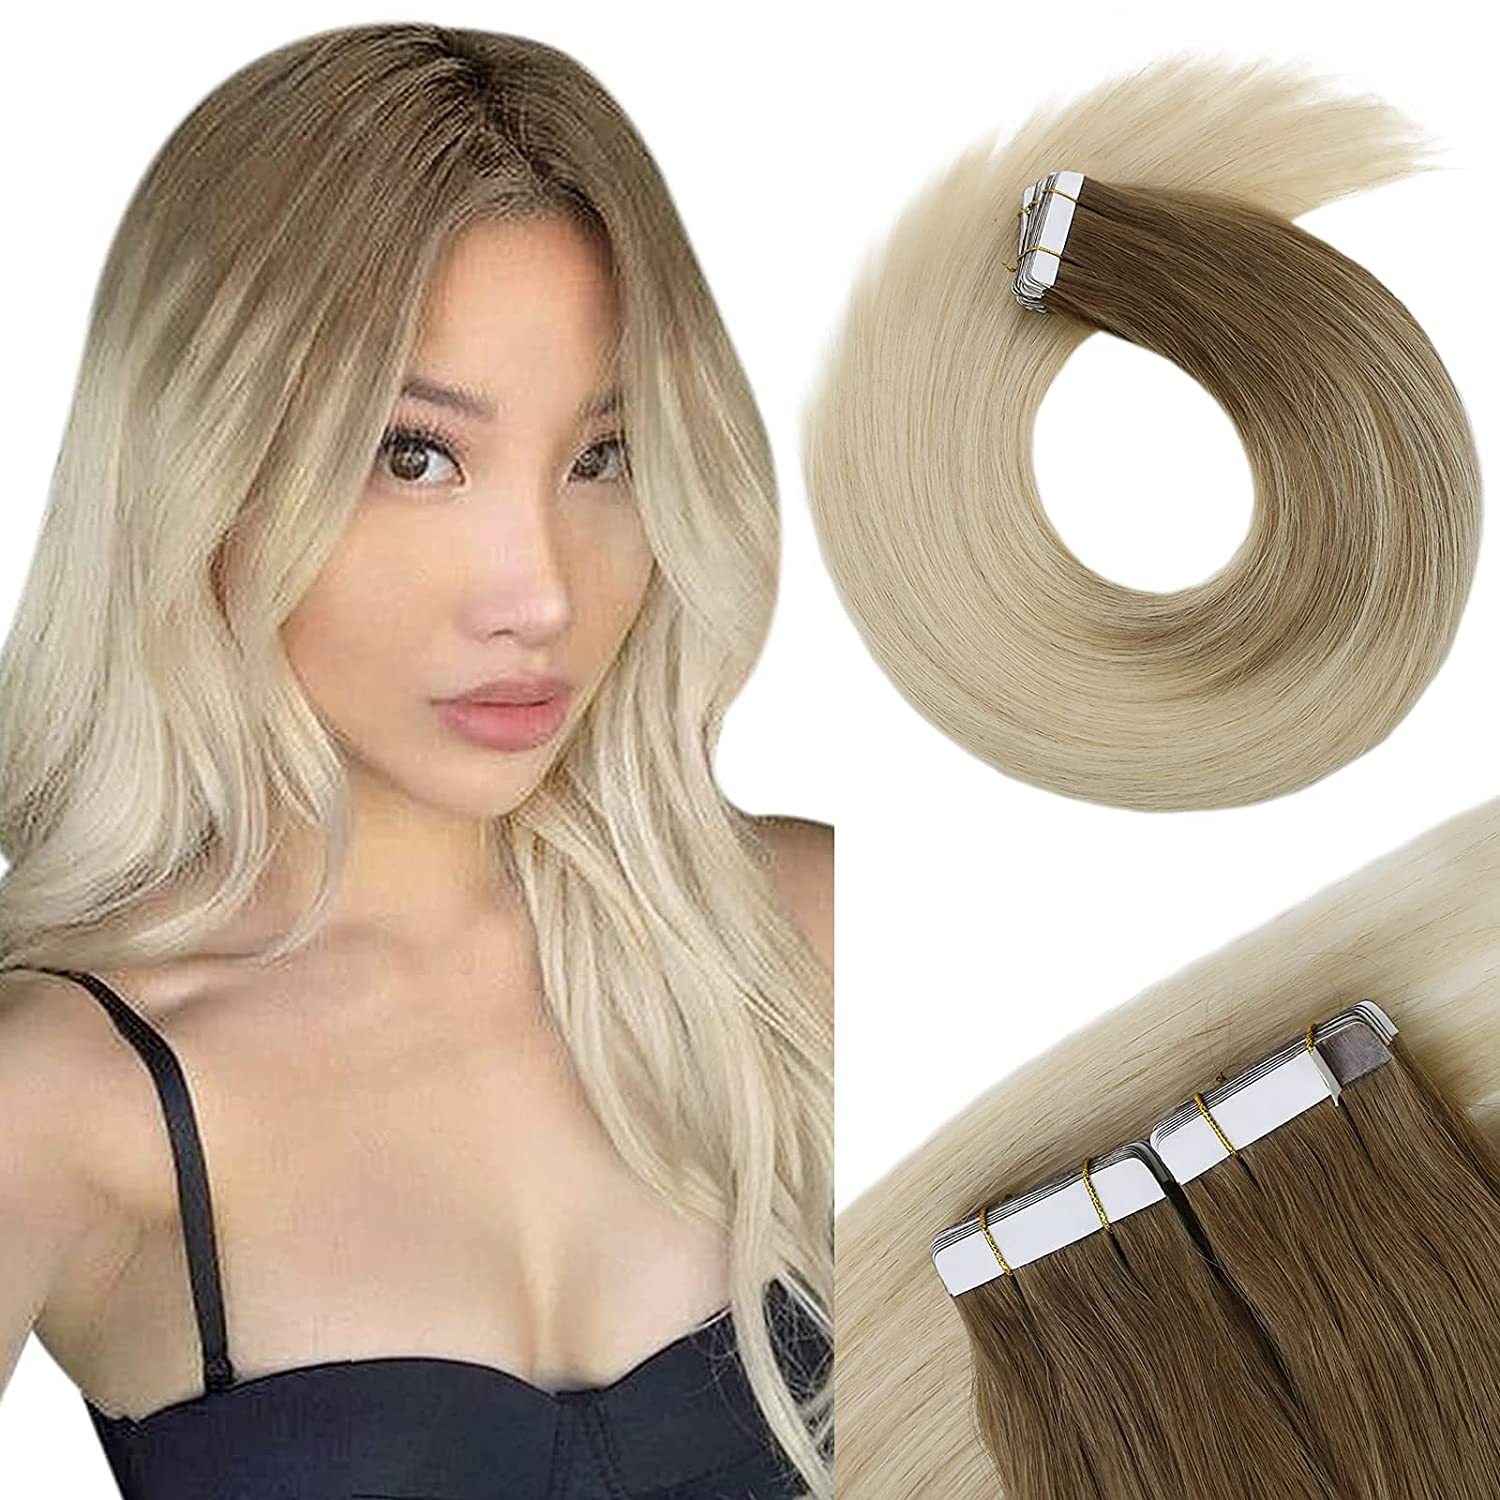 VeSunny Platinum Blonde Ombre Tape Extensions Hair Lig Classic 22inch Cheap SALE Start in